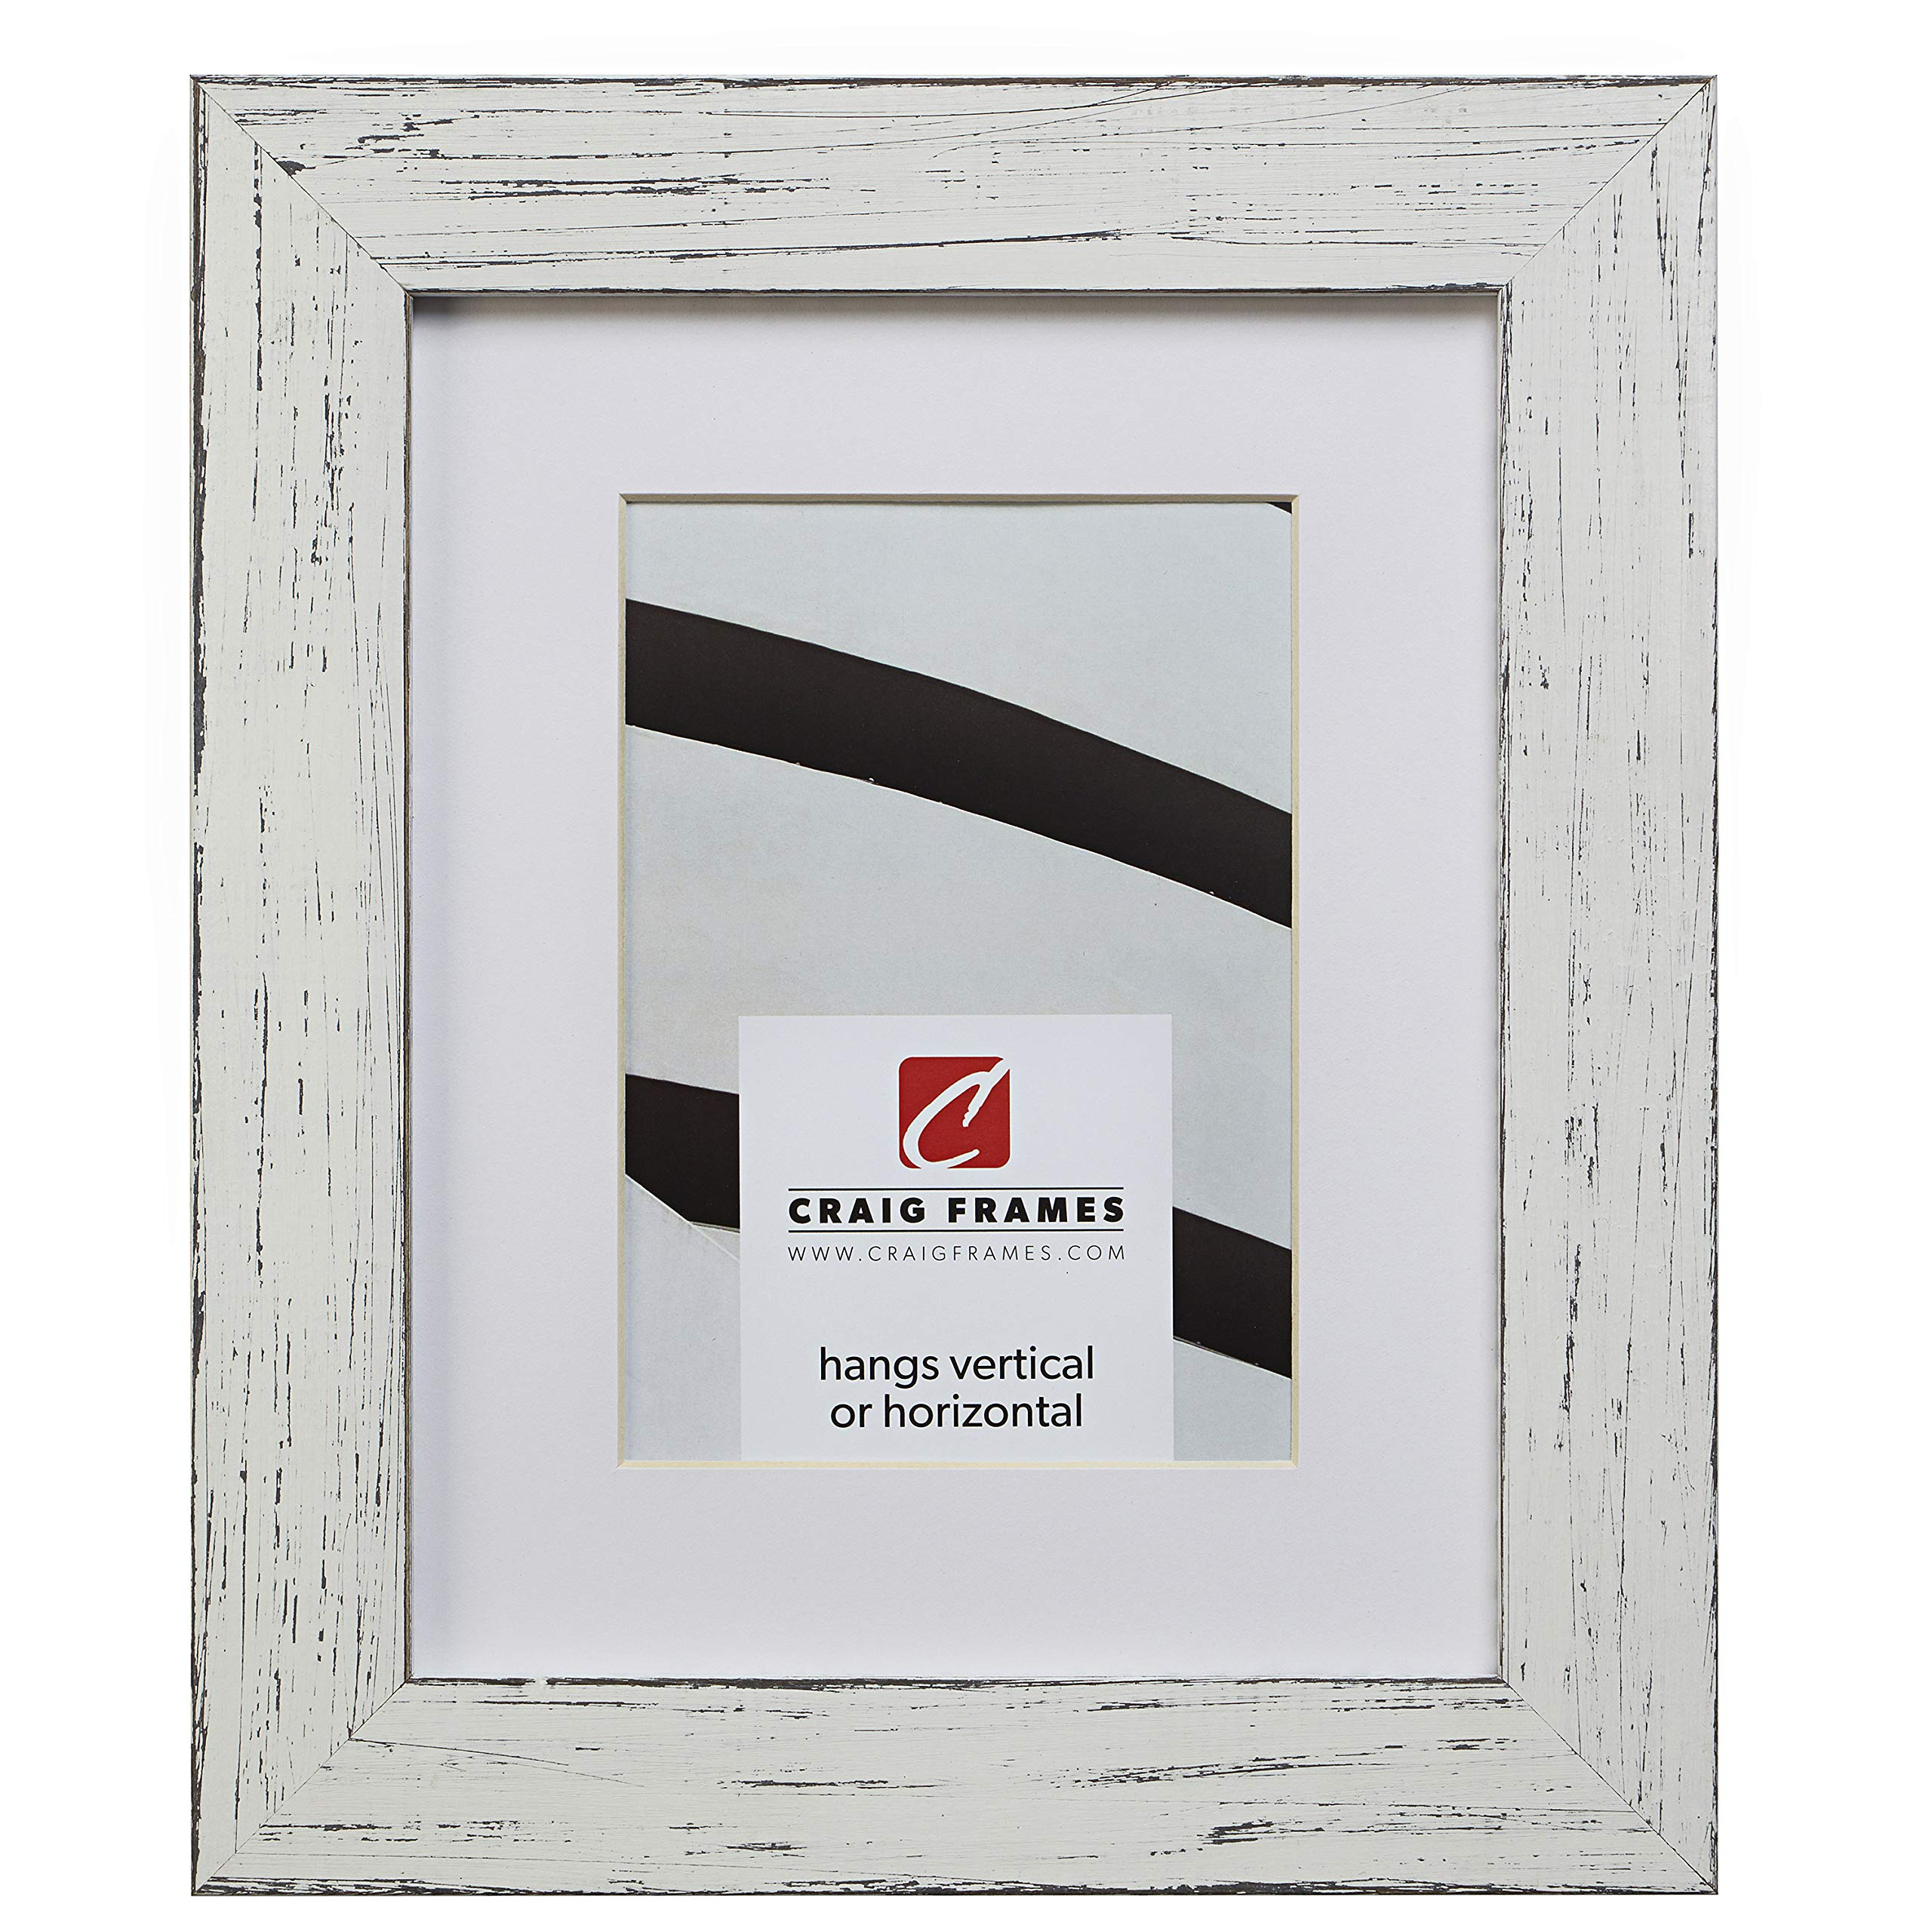 Craig Frames Jasper, 20 x 24 Inch Country Marshmallow White Picture Frame Matted to Display a 16 x 20 Inch Photo by Craig Frames